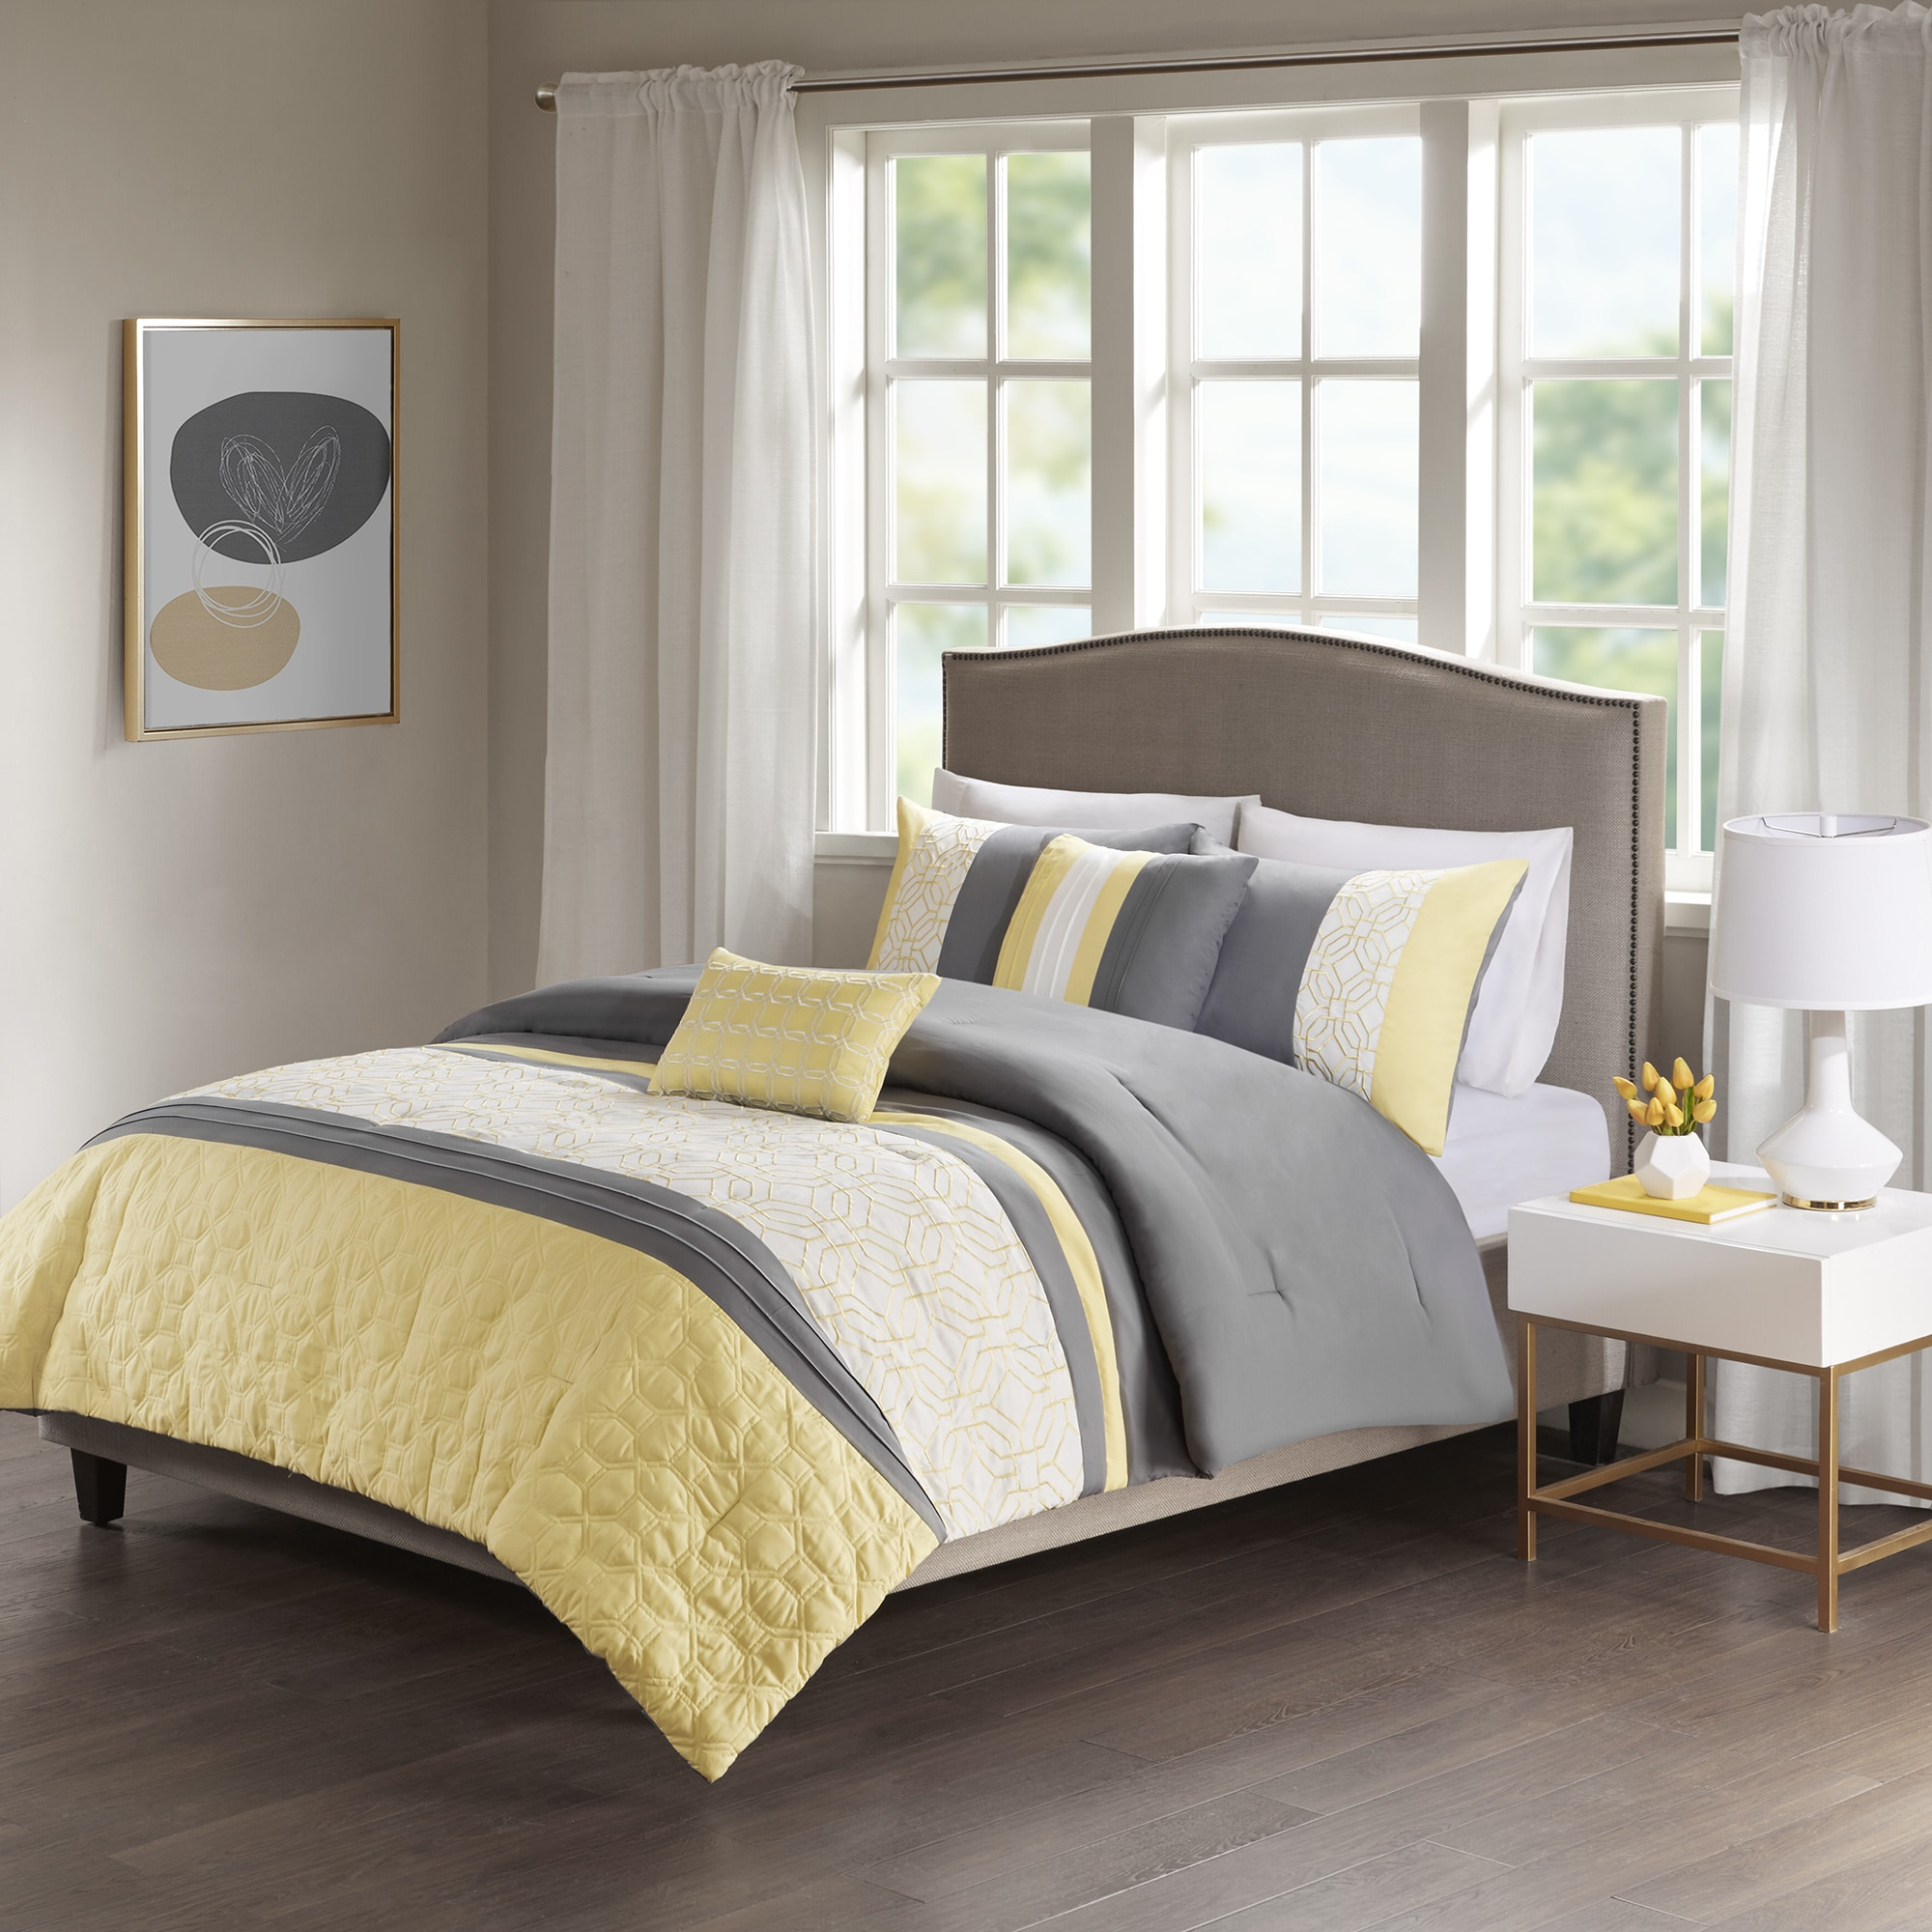 510 design shane yellow grey embroidered 5 piece comforter set